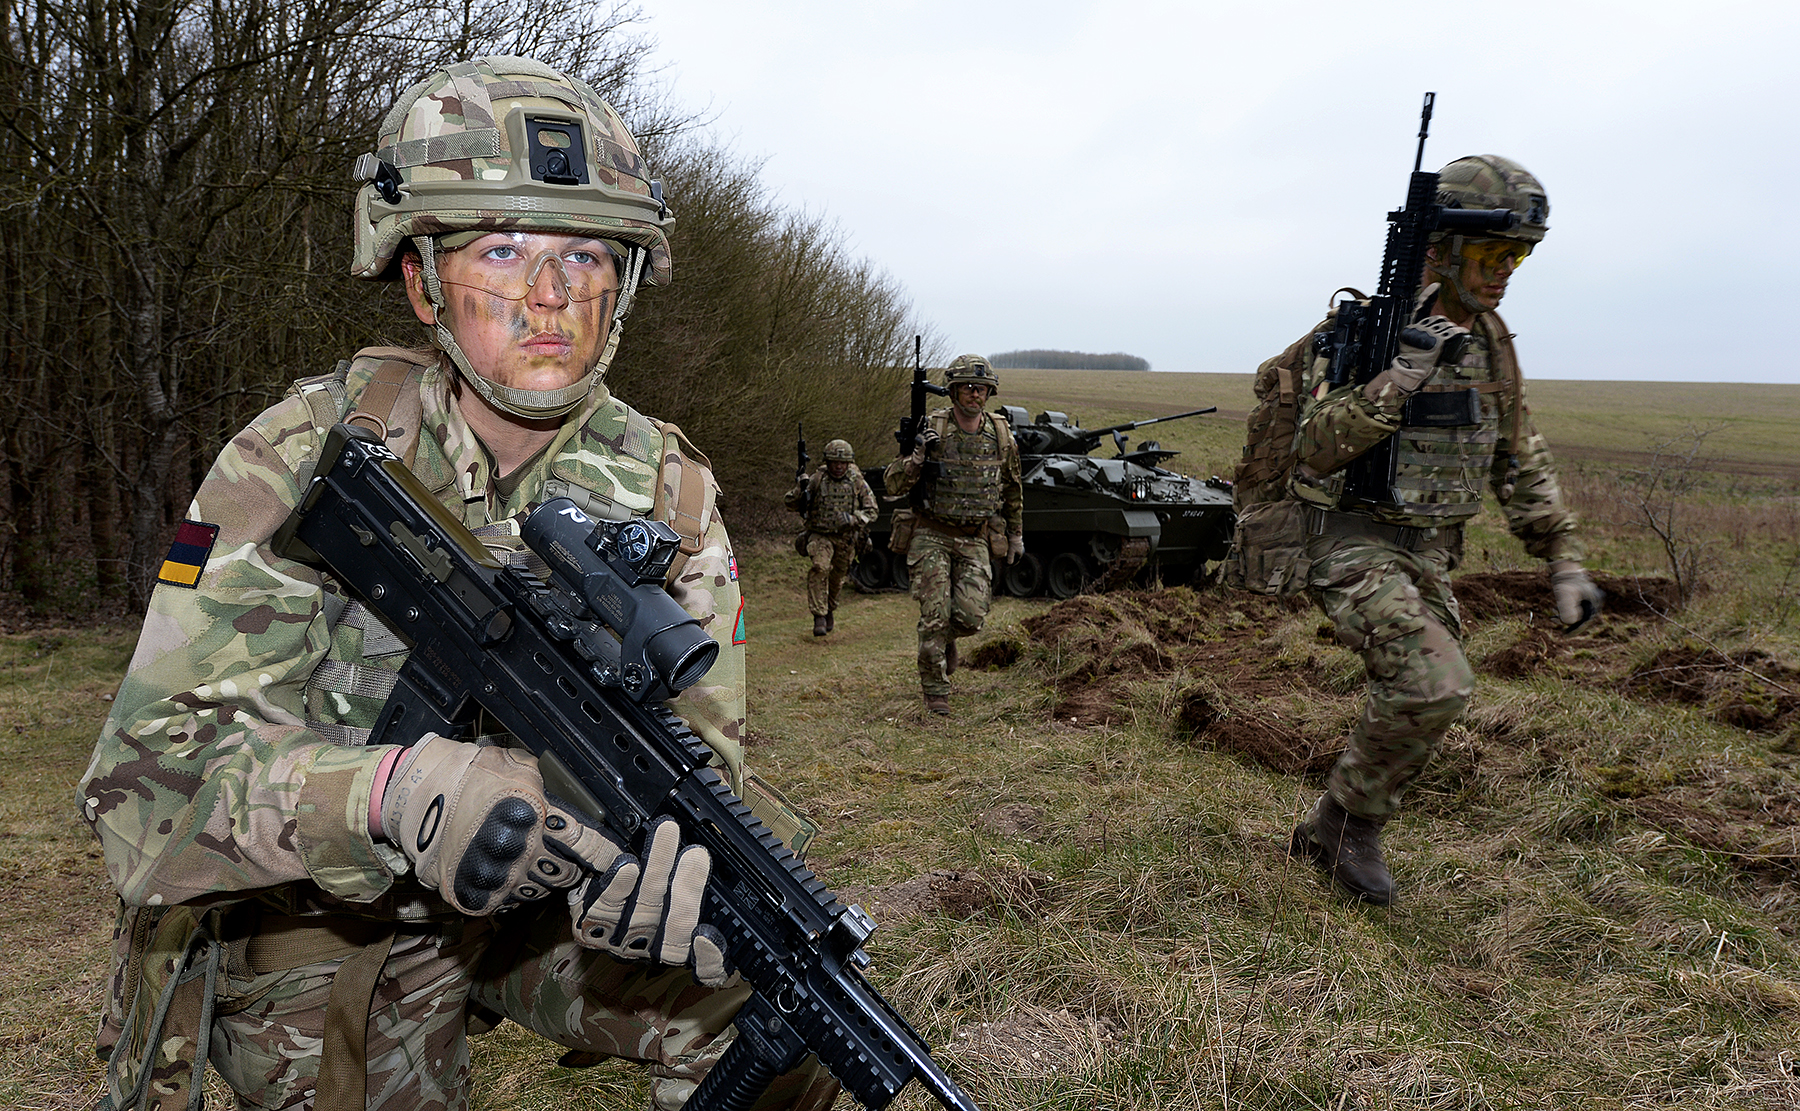 All British Armed Forces Roles Now Open To Women The